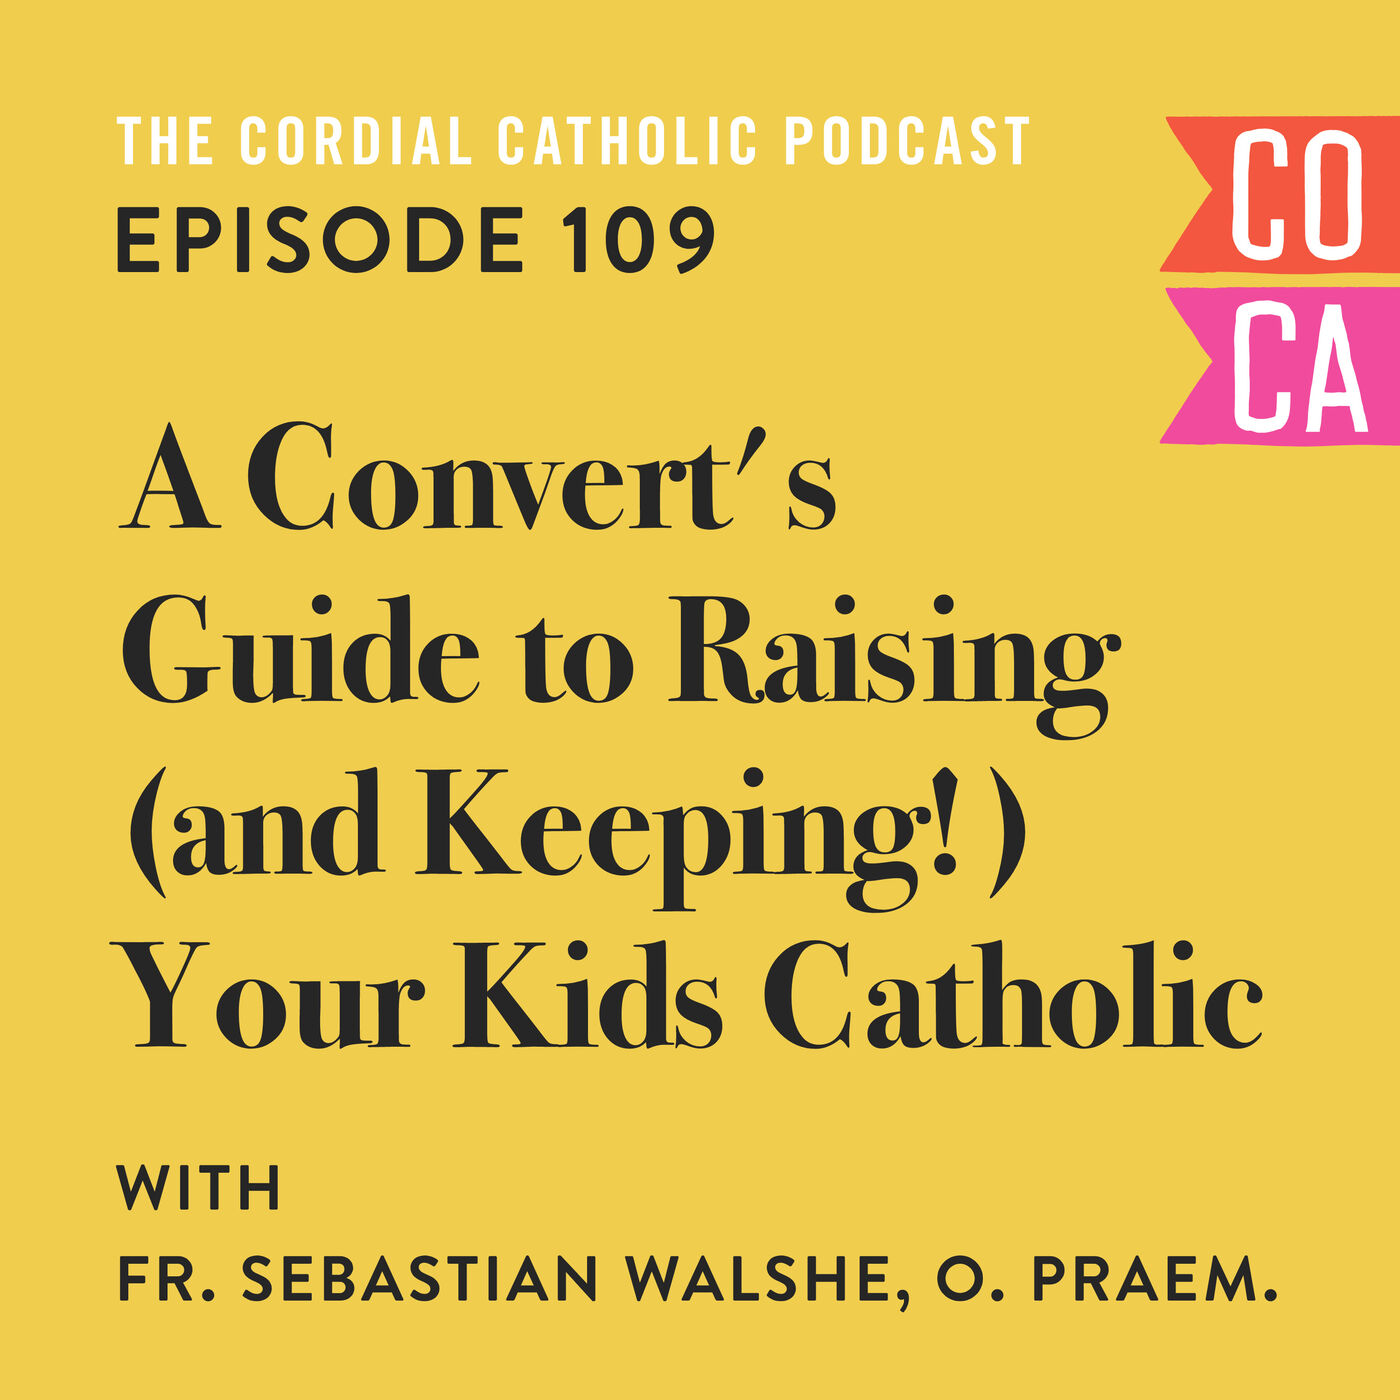 109: A Convert's Guide to Raising (and Keeping!) Your Kids Catholic (w/ Father Sebastian Walshe)